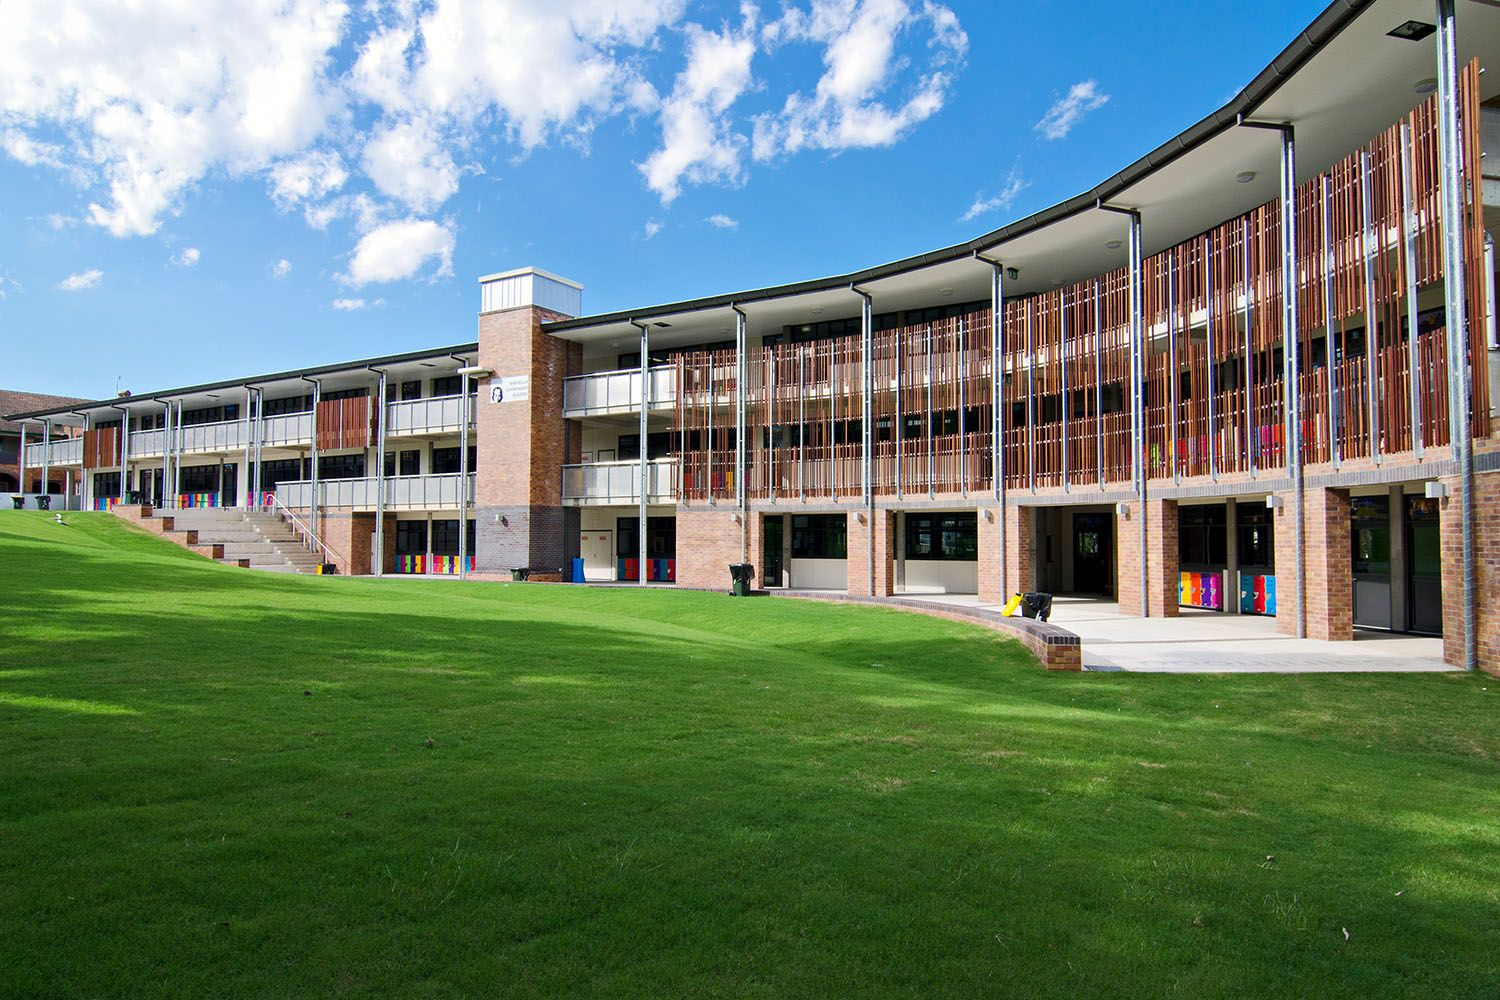 Mt maria college marcellin champagnat building for Architecture colleges